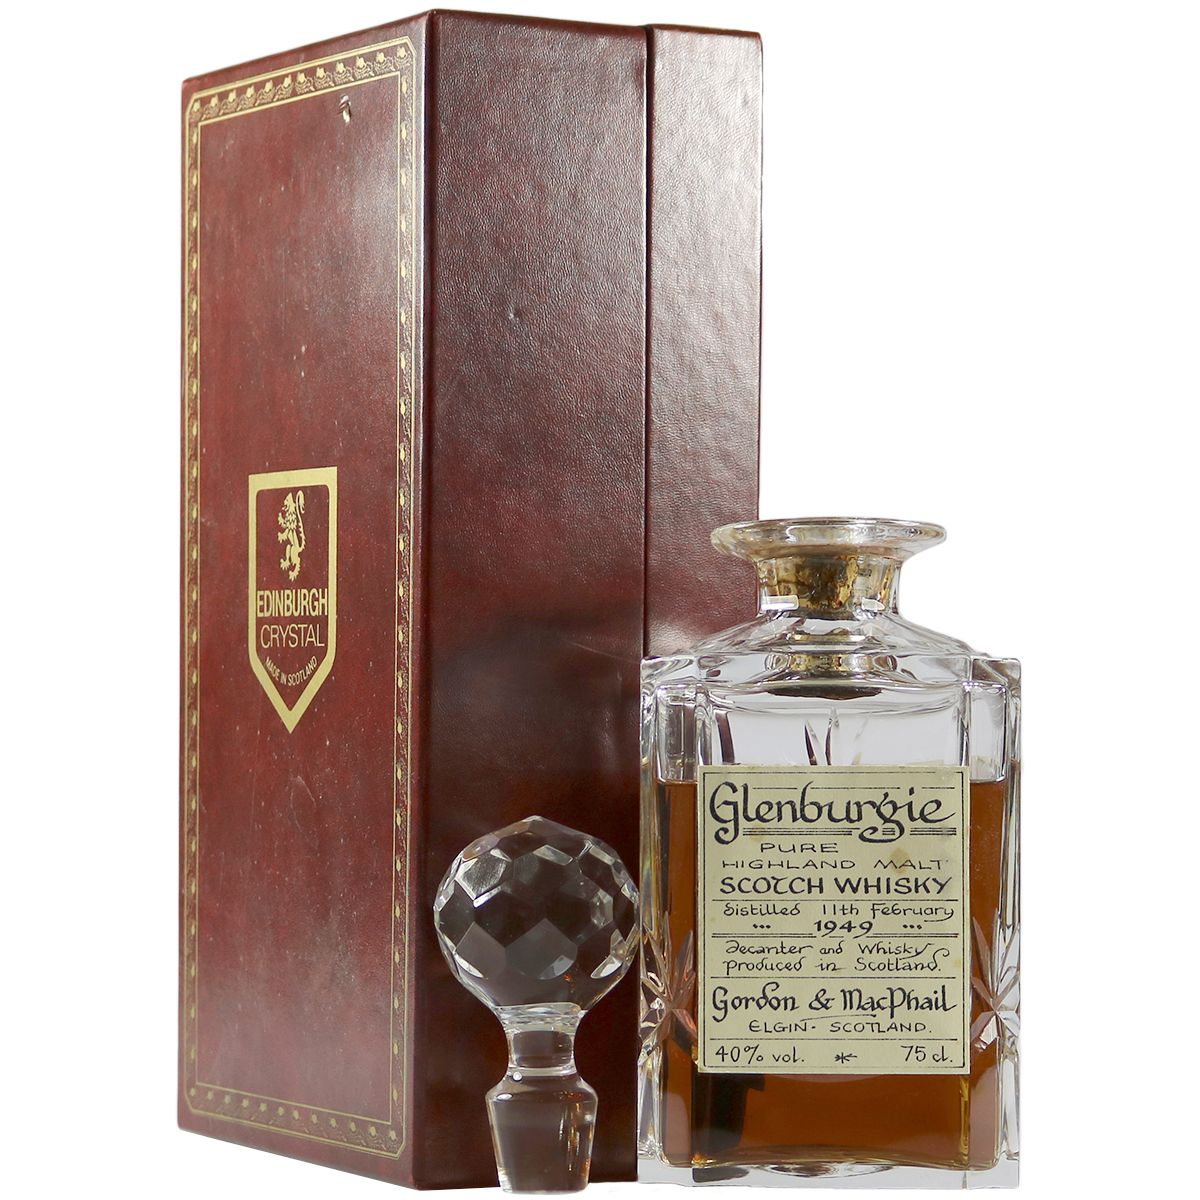 Glenburgie 1949, Gordon & MacPhail Crystal Decanter | The Whisky Vault